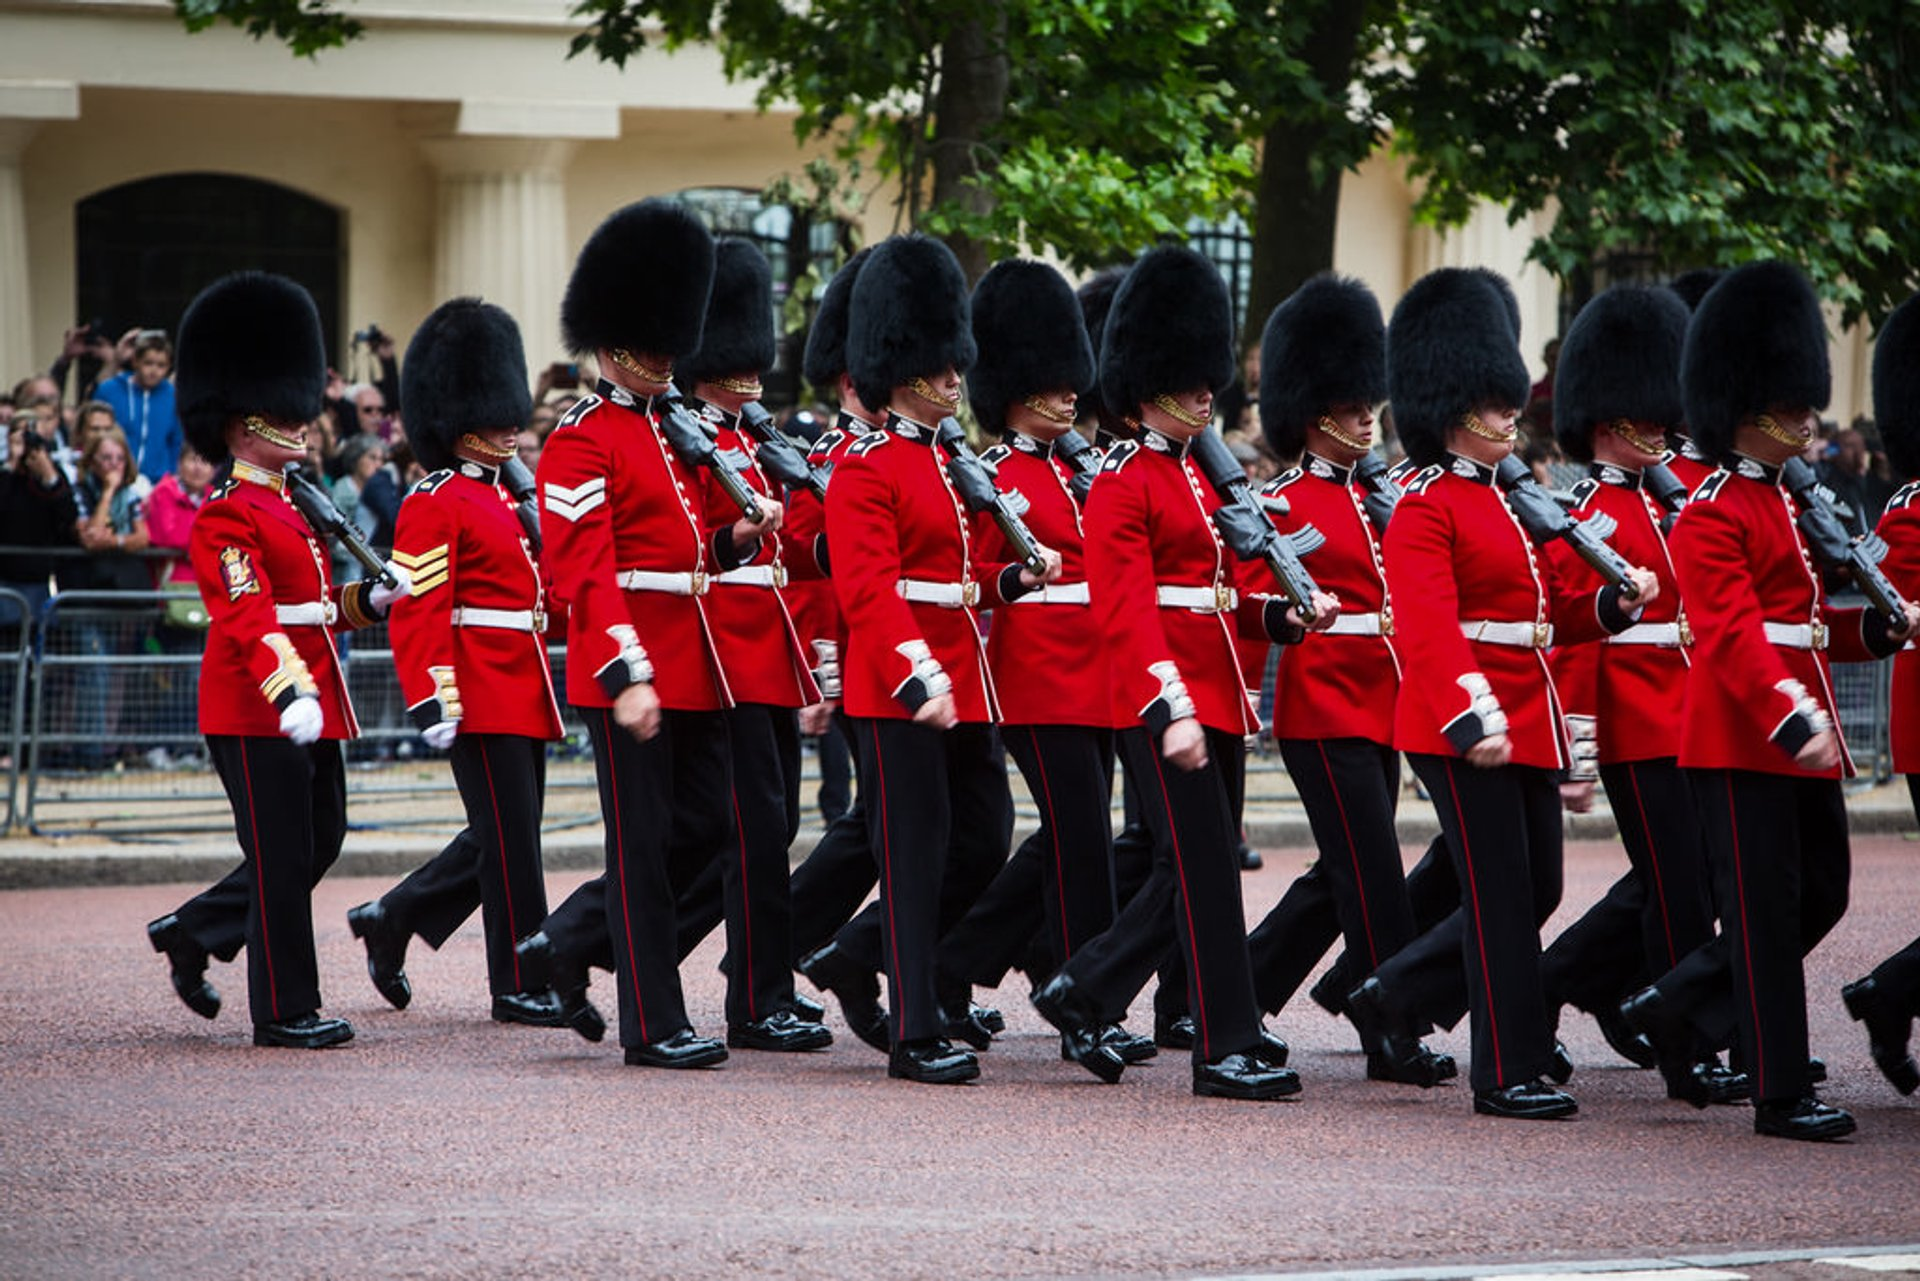 Best time for Trooping the Colour & The Queen's Birthday Parade in London 2020